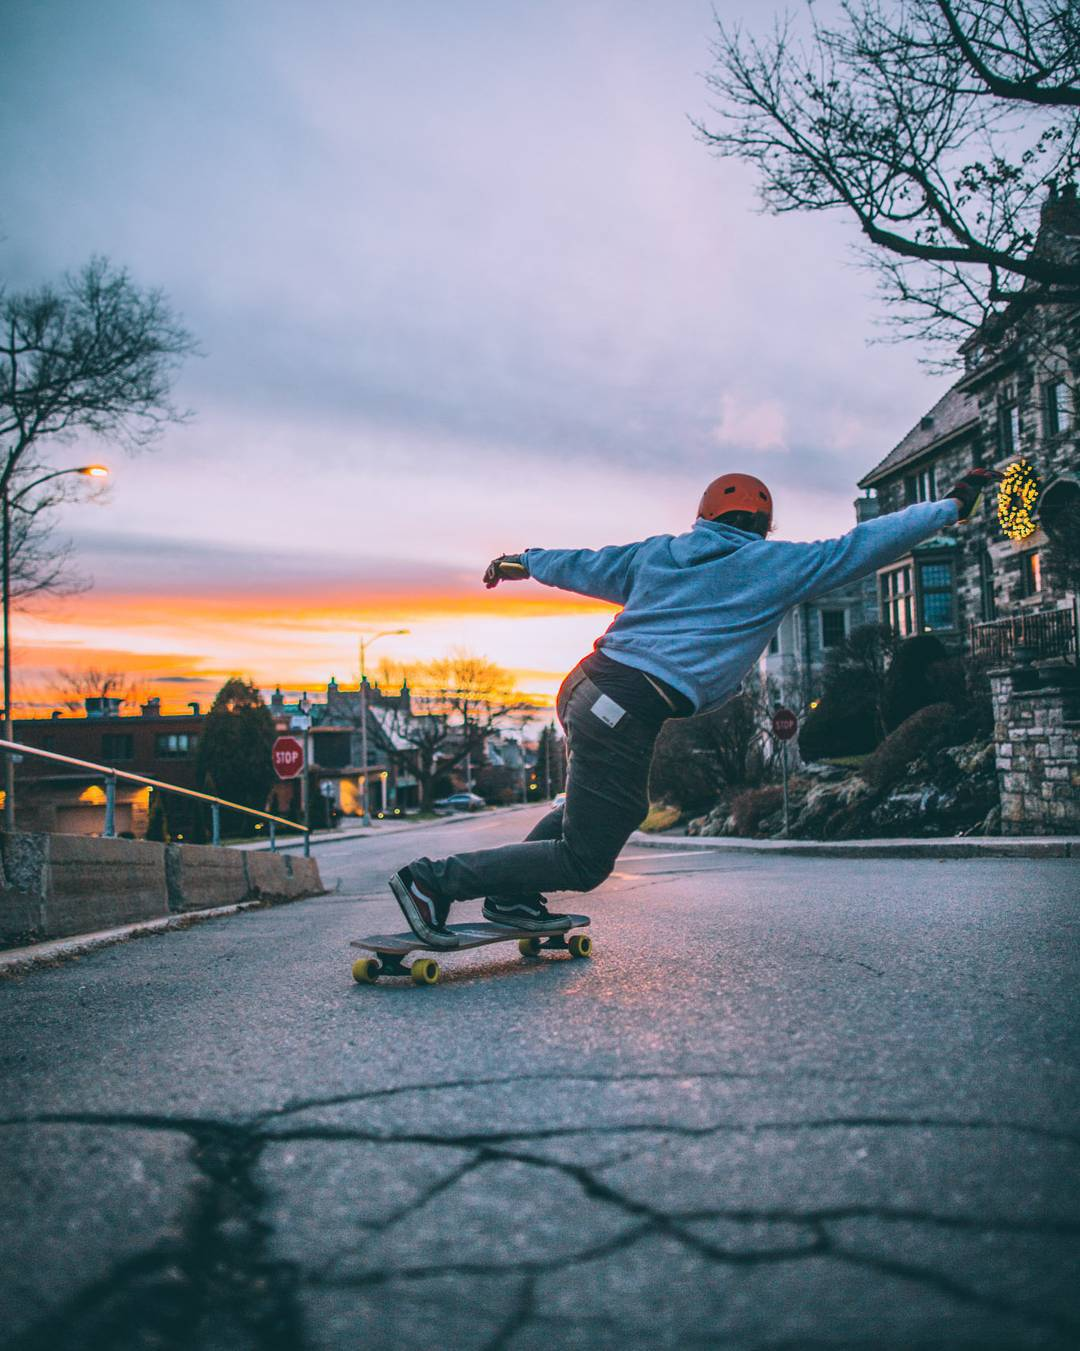 #OrangatangAmbassador @charlesouimet descending into the winter sunset of Montreal.  Photo: @refinedmoment  #Orangatang #yellow #thecage #montreal #sunset